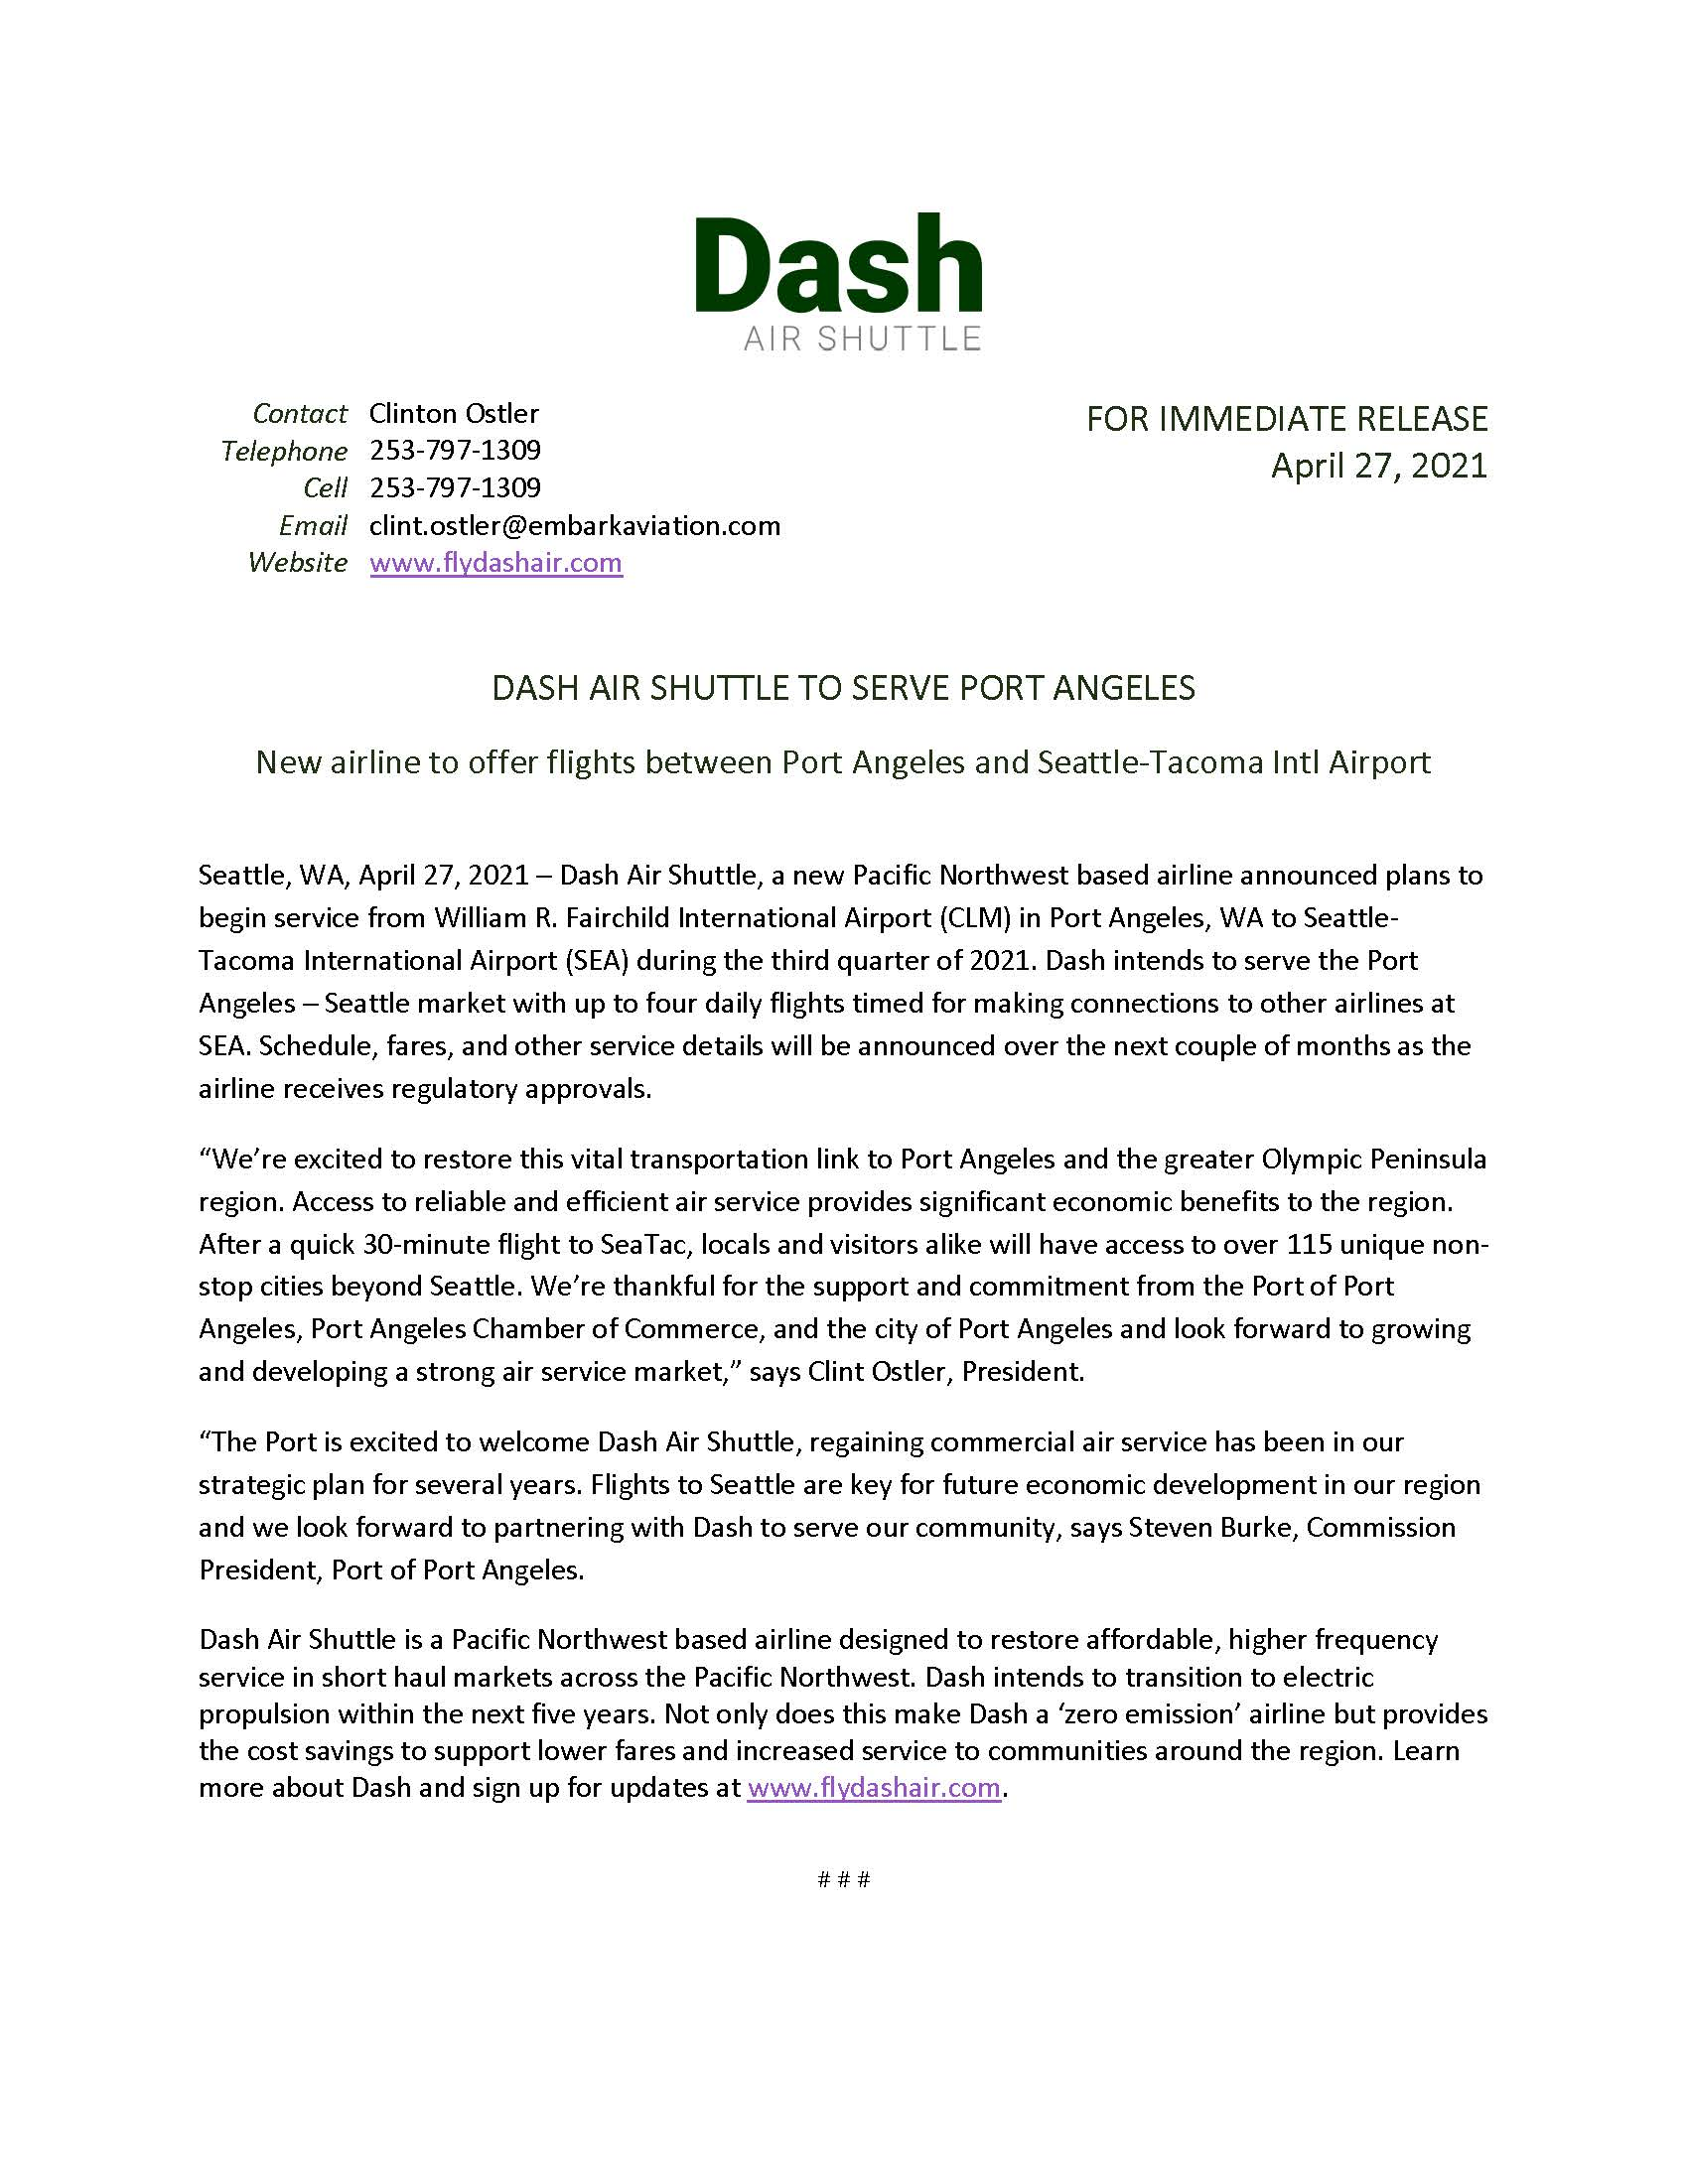 Press Release - Dash Air Shuttle Announcement